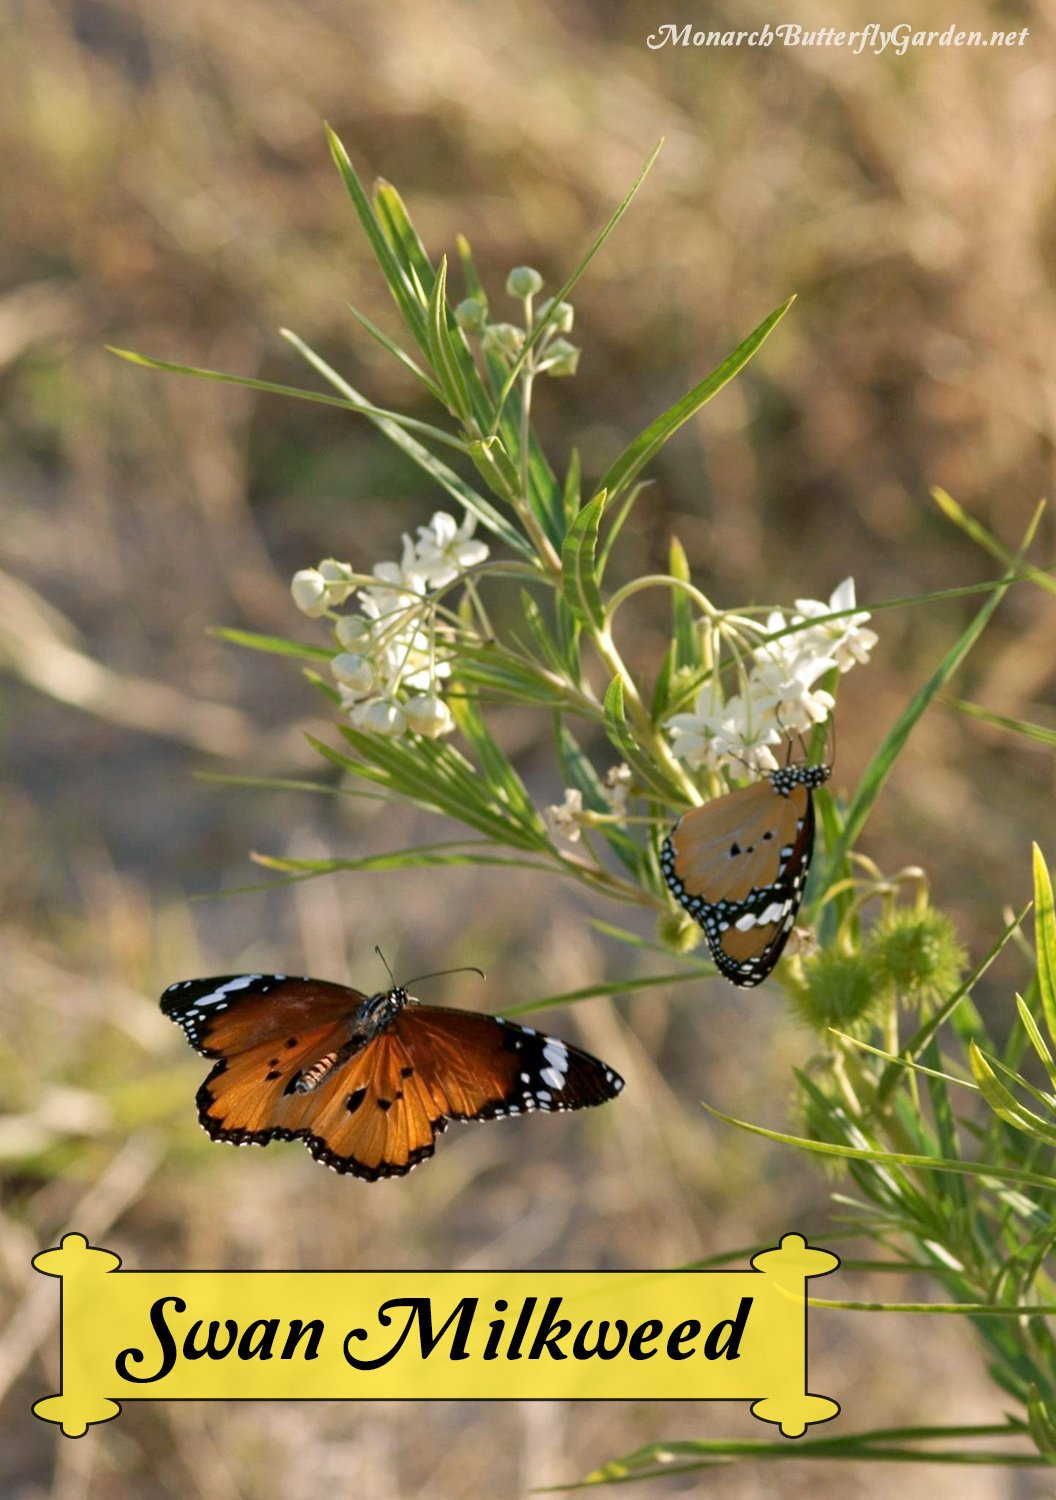 Uncommon Milkweed Idea- Two Danaus chrysippus (plain tiger butterflies) enjoy swan milkweed flowers. Plant this variety to attract Danaus plexippus (monarch butterflies) to your butterfly garden.